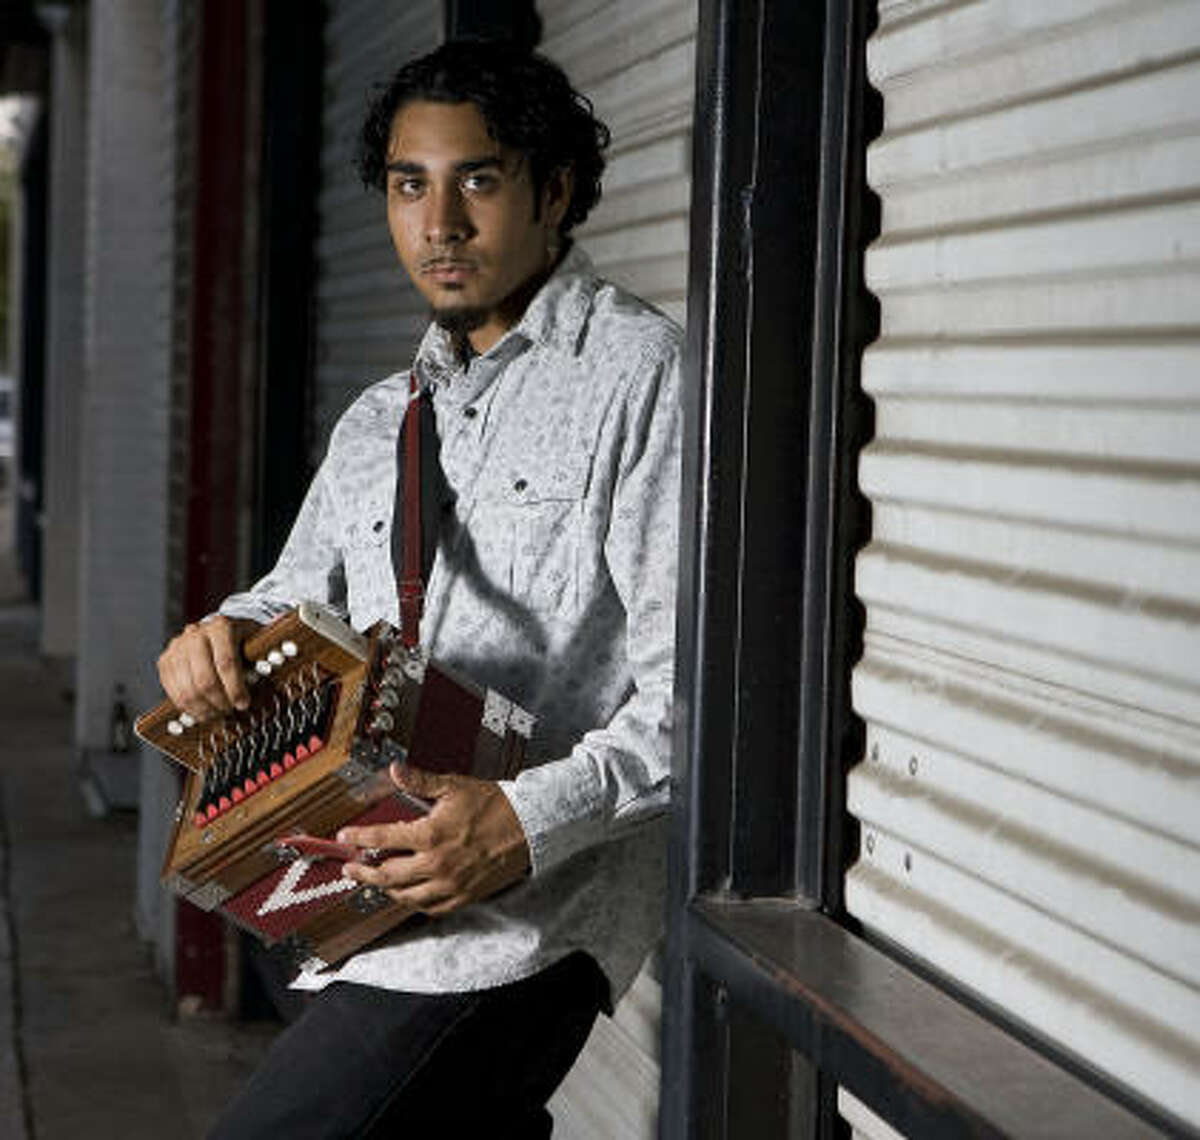 Accordion player Ruben Moreno isa finalist in the Big Squeeze Competition put on by Texas Folklife.